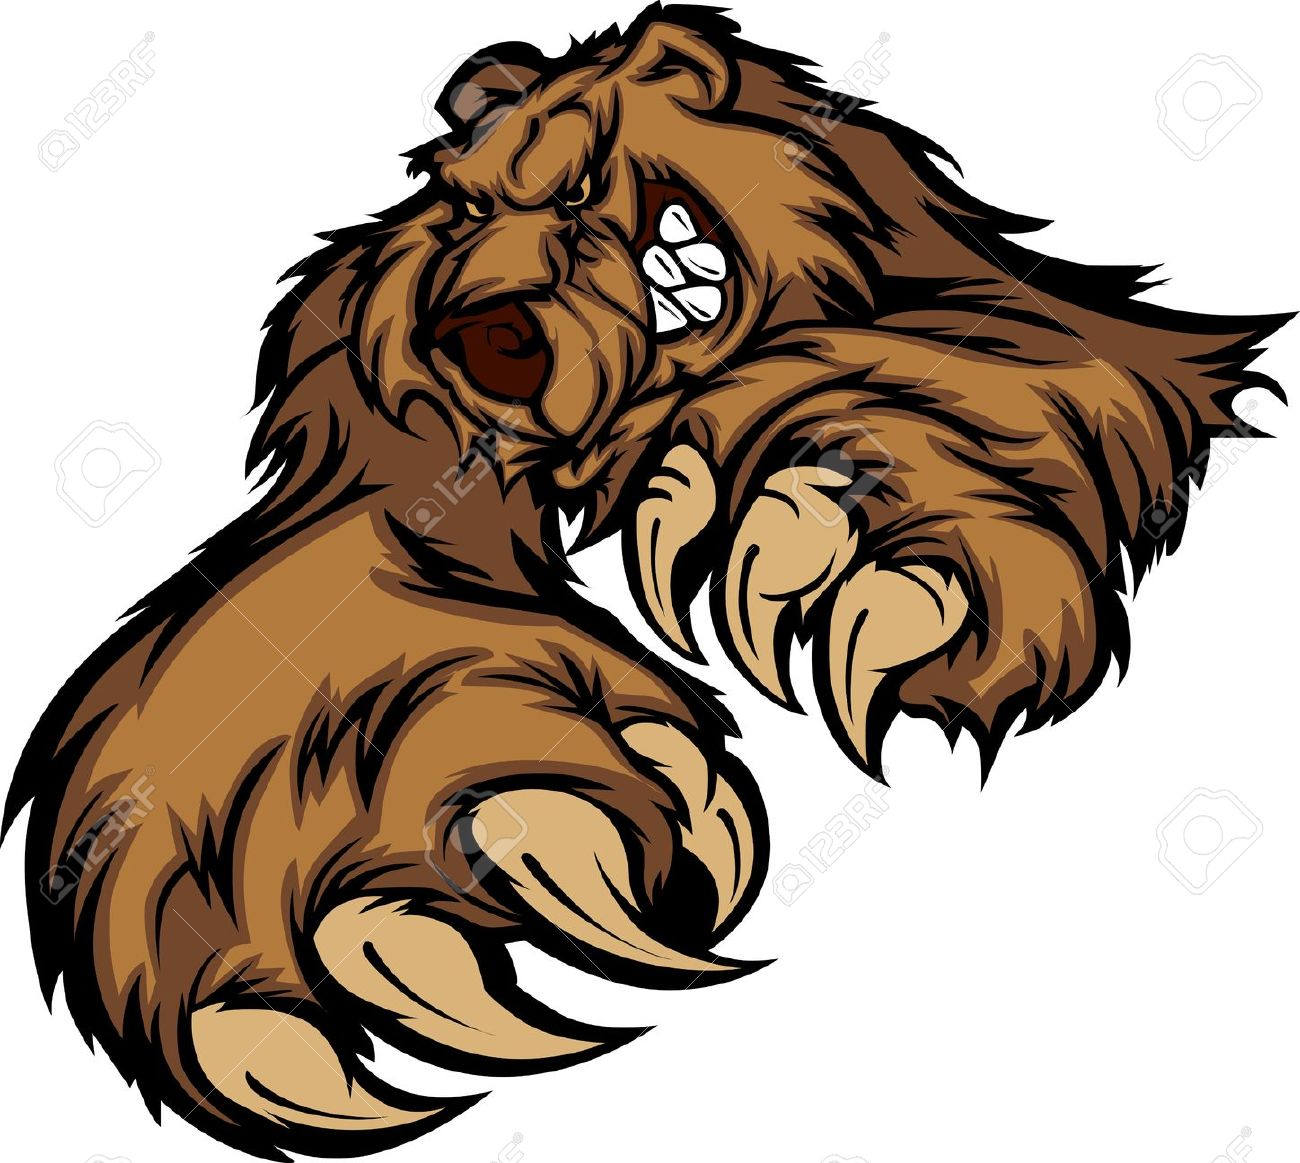 Grizzly Bear clipart #5, Download drawings